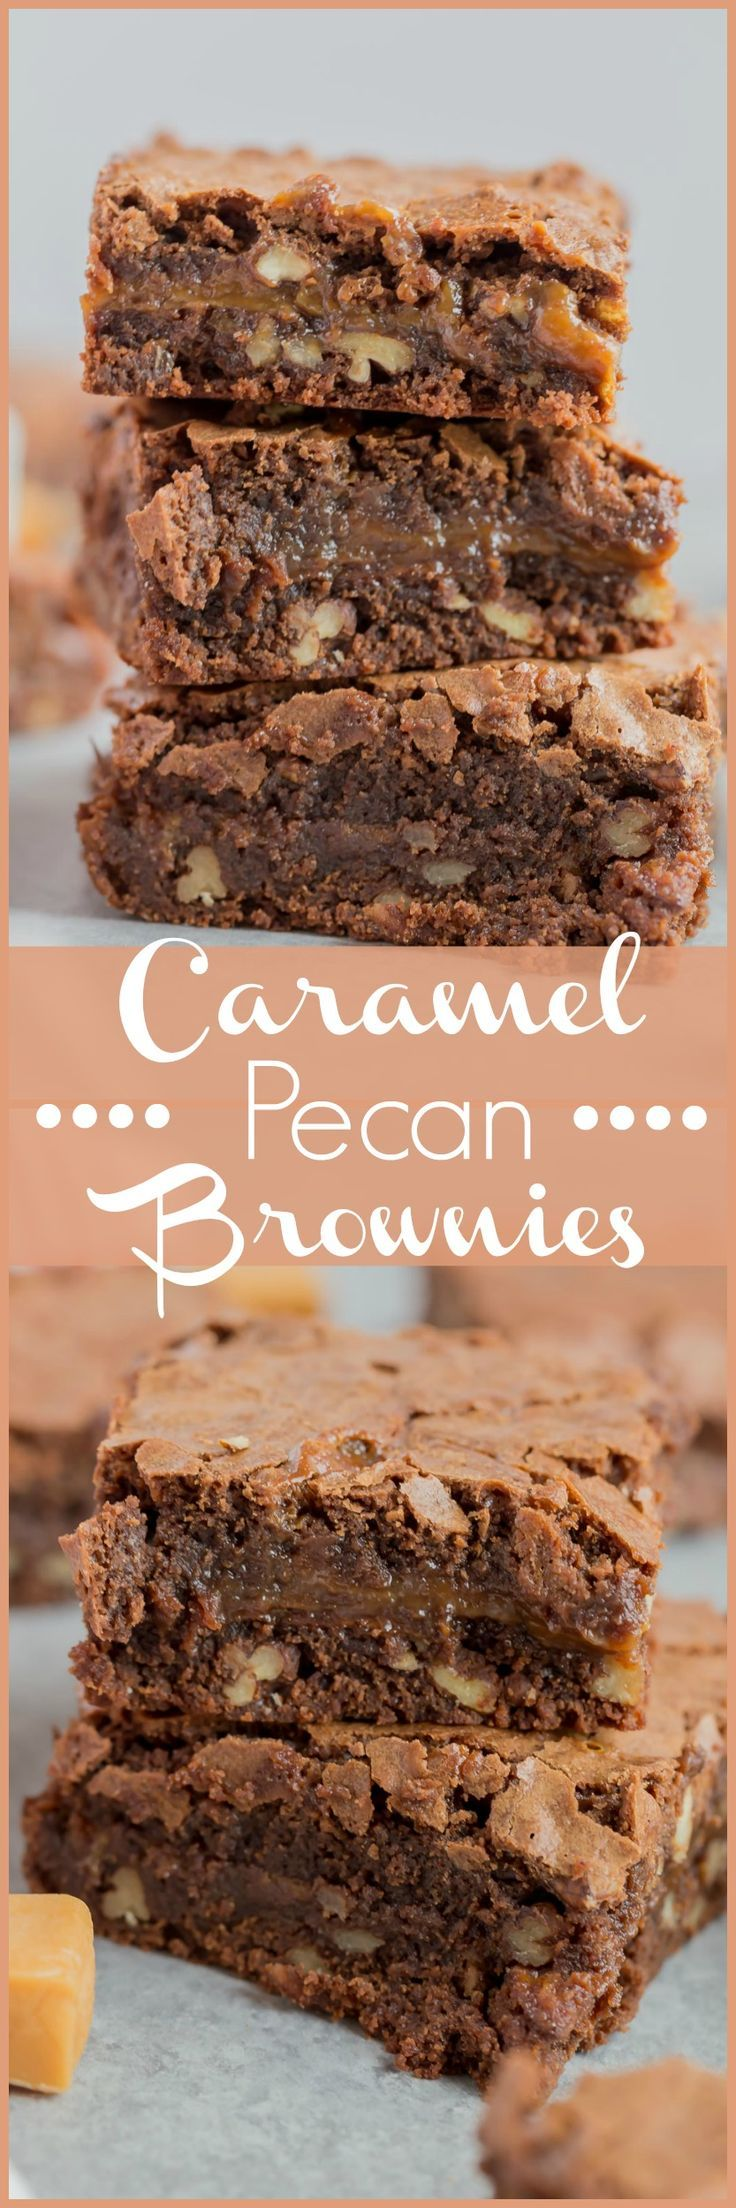 If you love brownies then you're gonna love these Caramel Pecan Brownies. They're soft, chewy, chocolate-y with caramel and pecans. Add a dollop of vanilla ice cream and you're in brownie heaven.